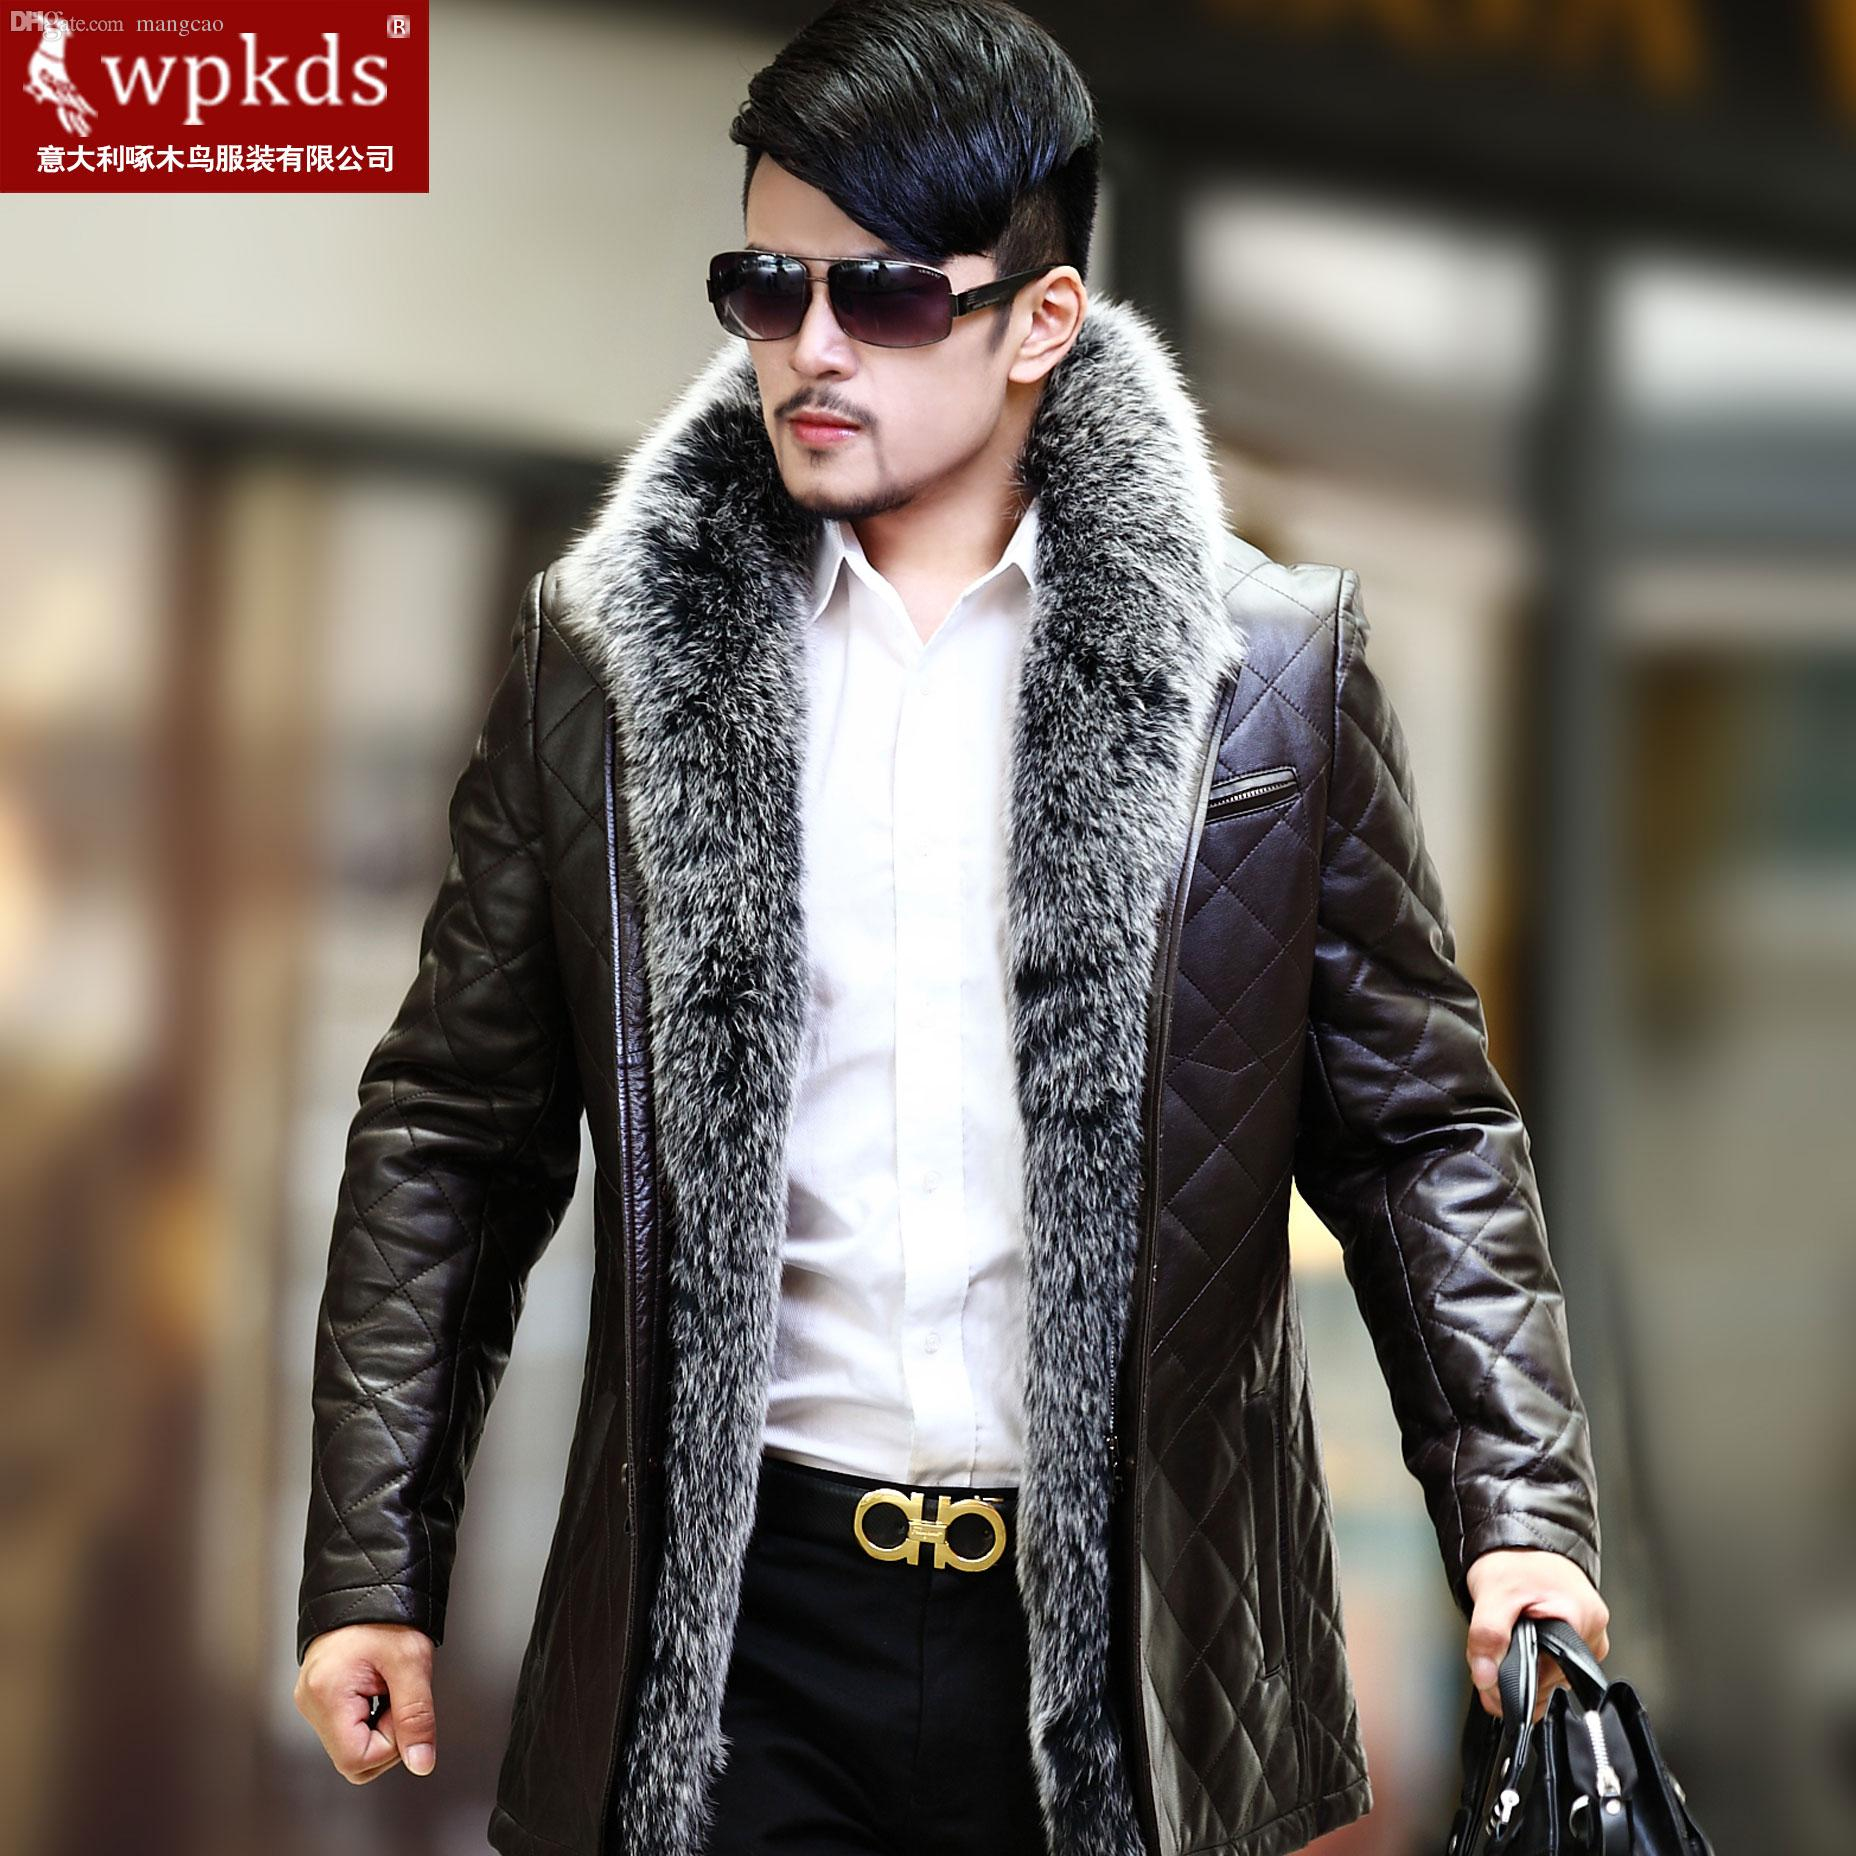 69921465c Fall-Wpkds new silver fox fur sheep skin leather leather jacket for men in  the long coat's special offer